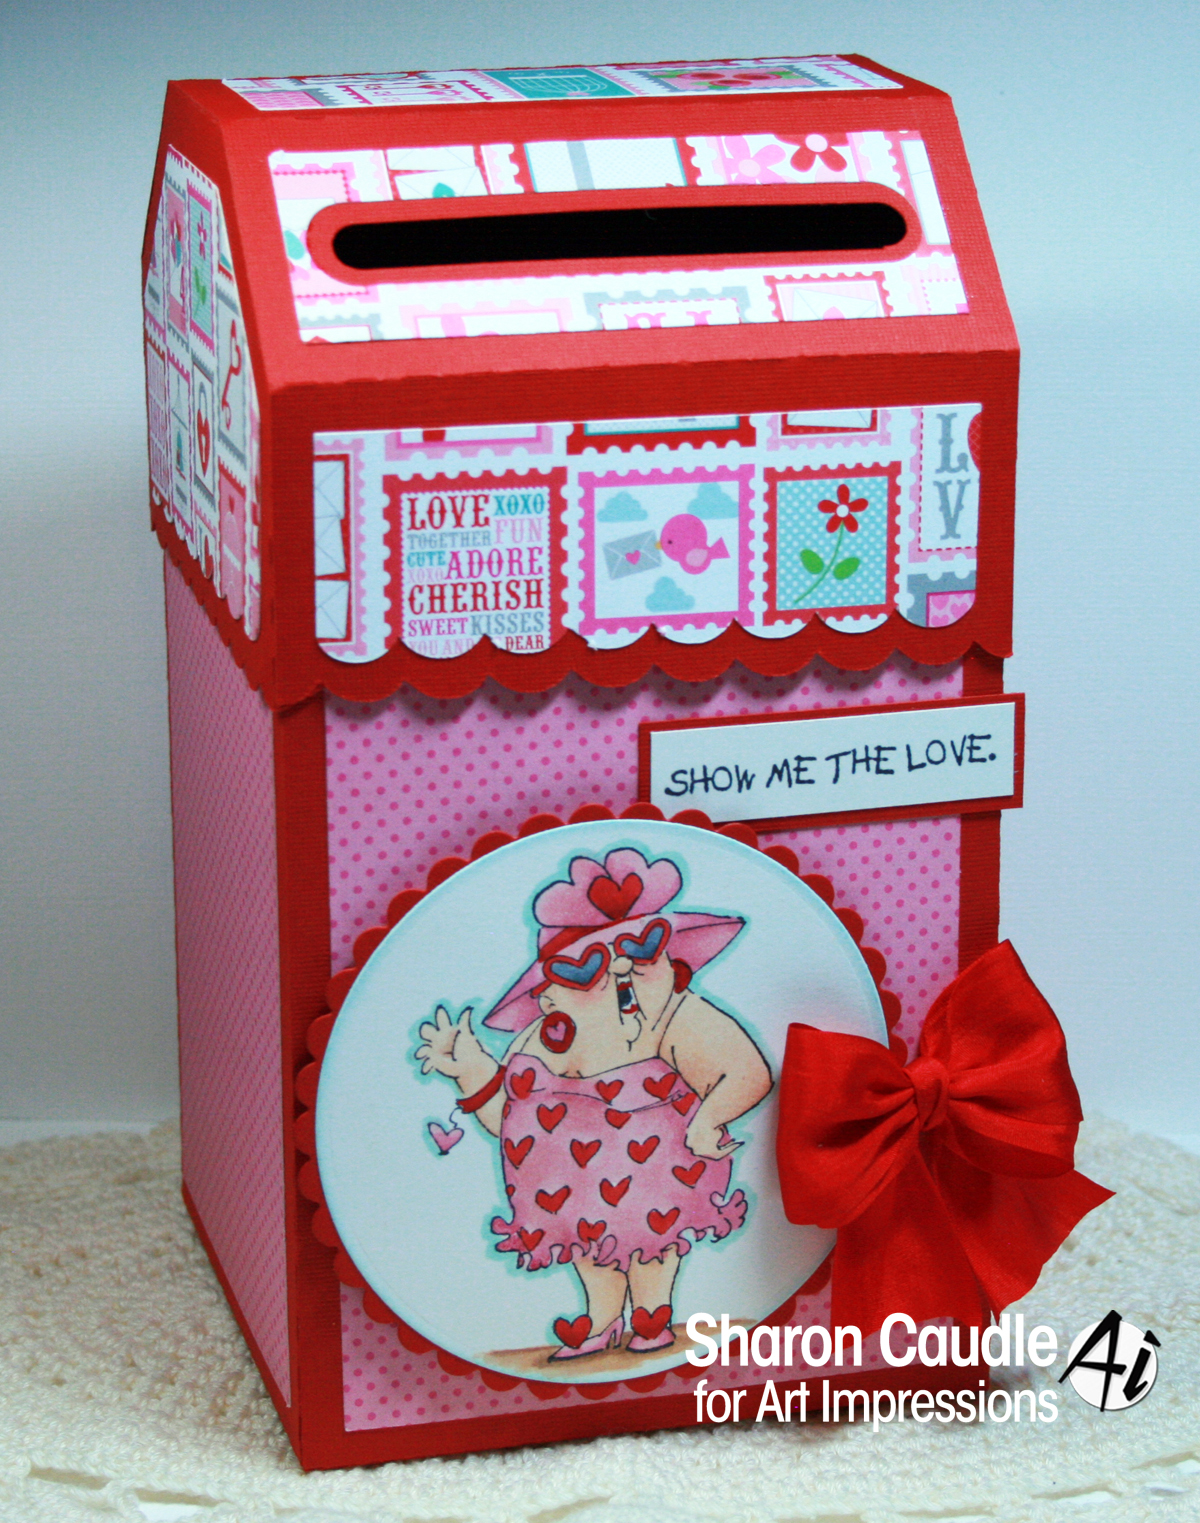 Art Impressions Blog: Valentine love letter box by Sharon Caudle